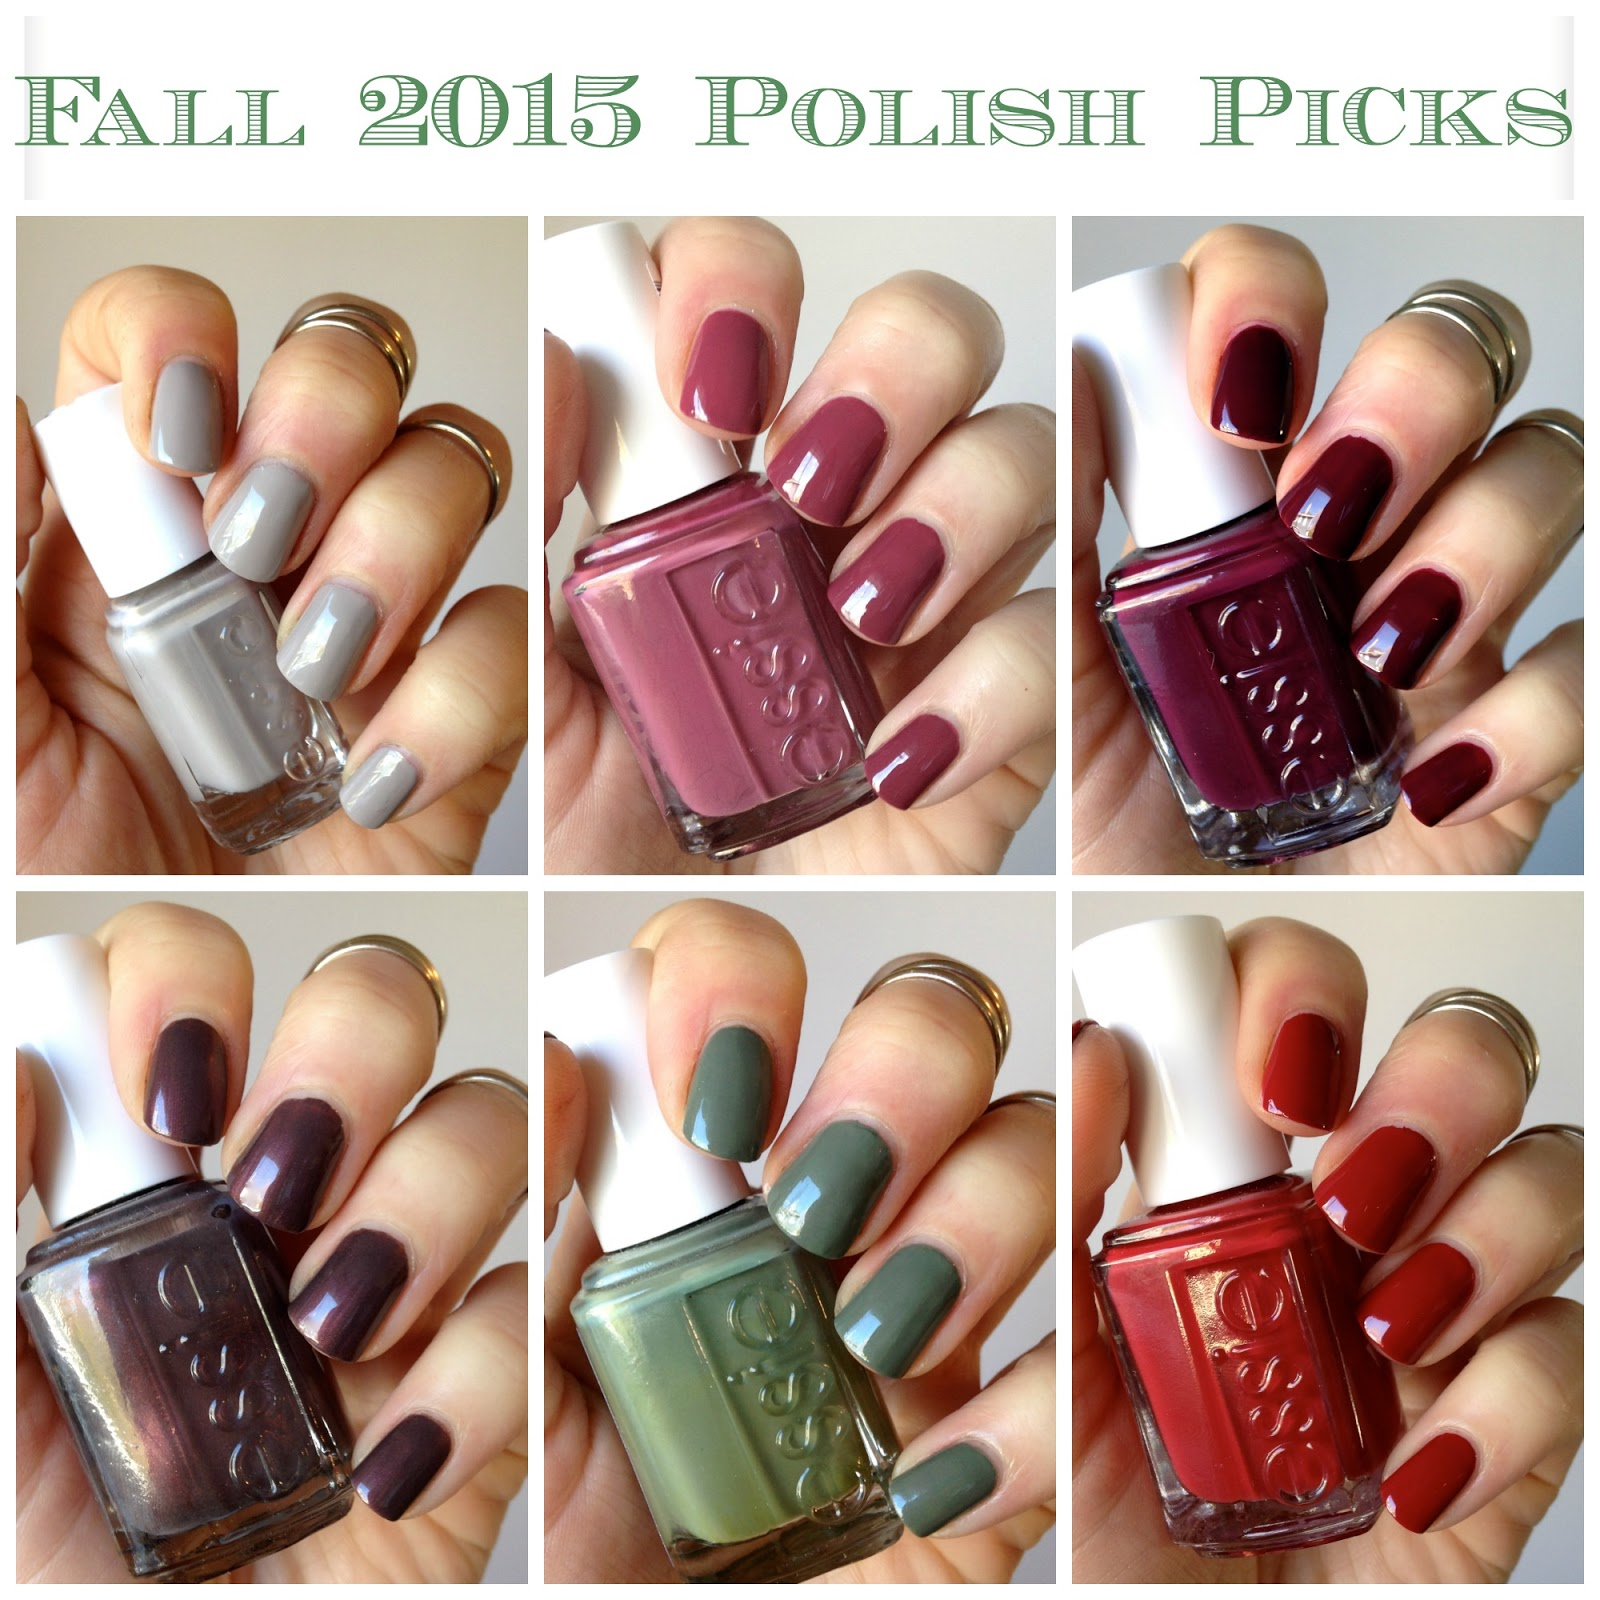 Fall 2015 Polish Picks | Essie Envy